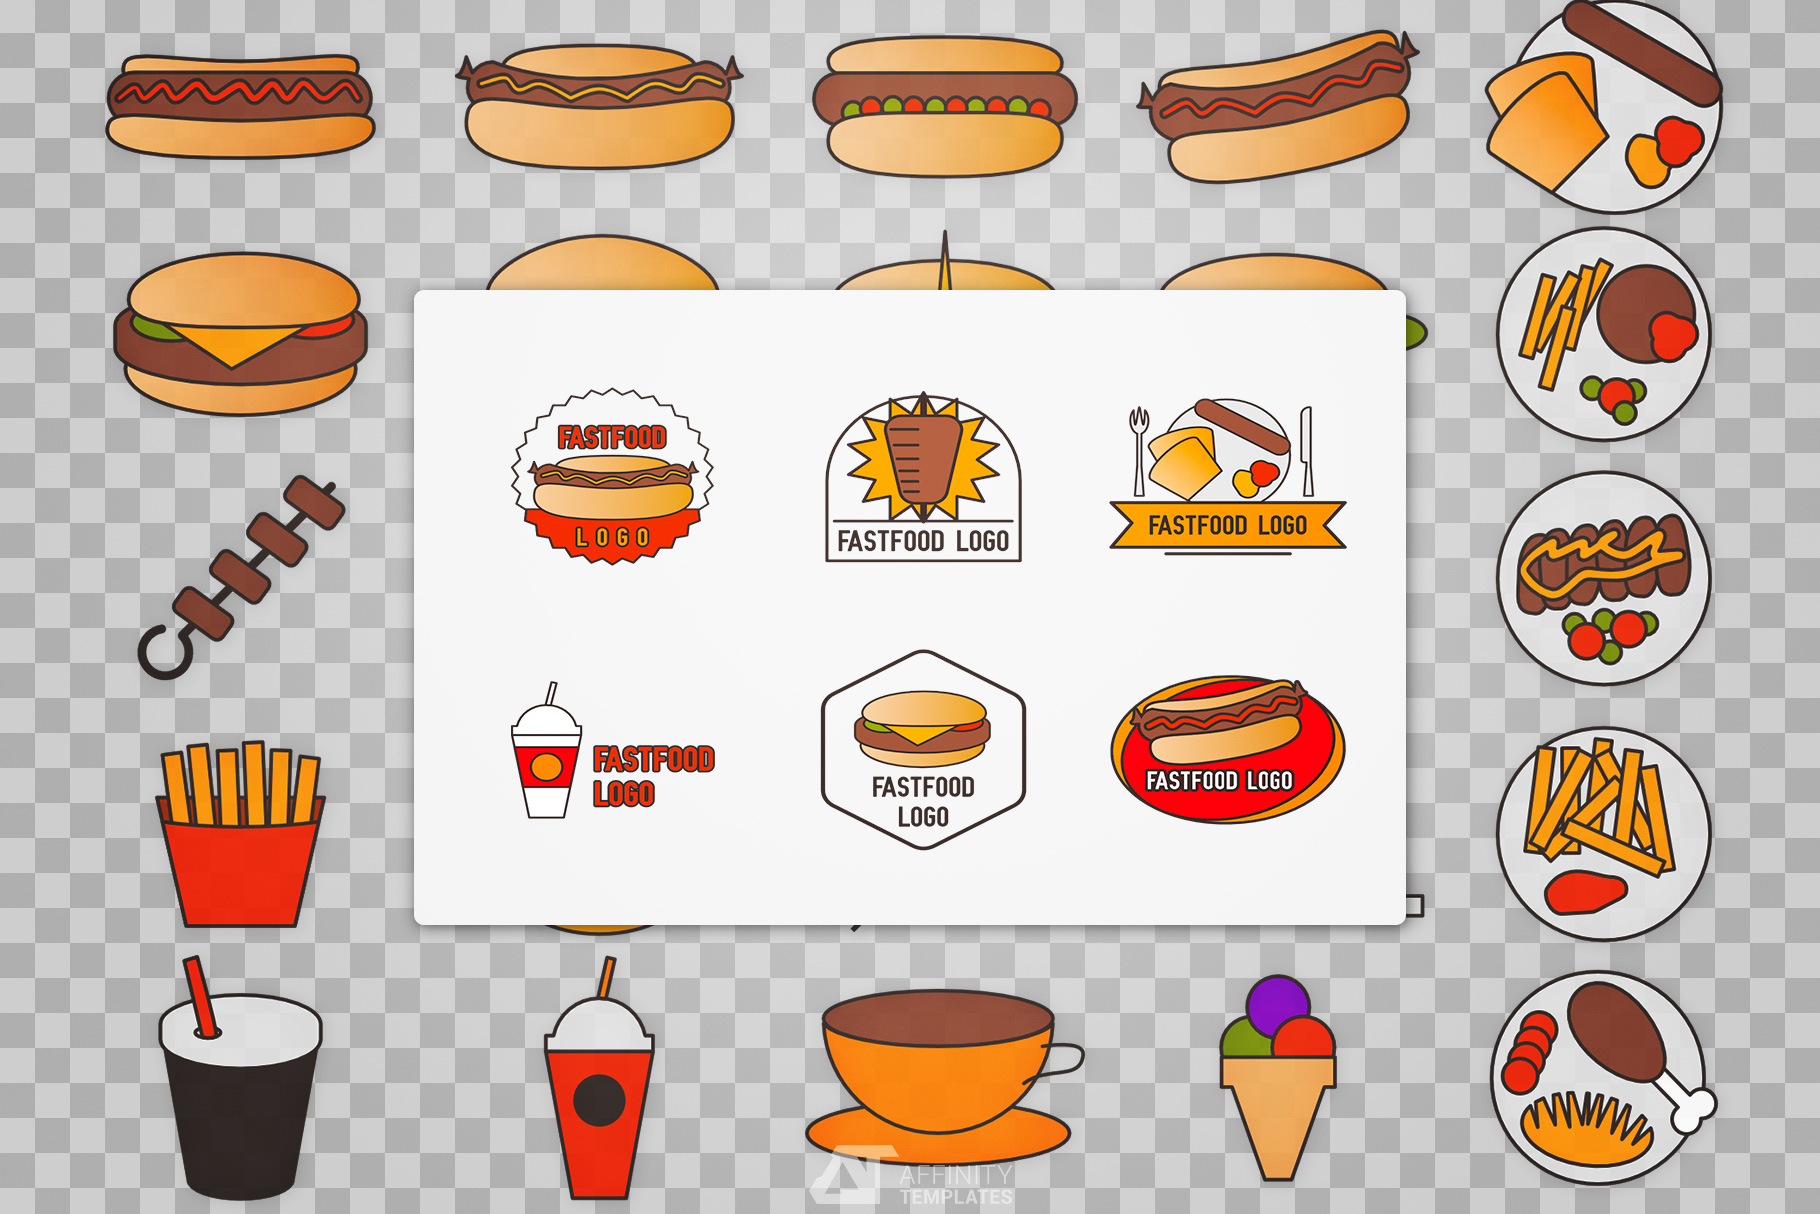 Fast Food Small Restaurant Logos example image 3